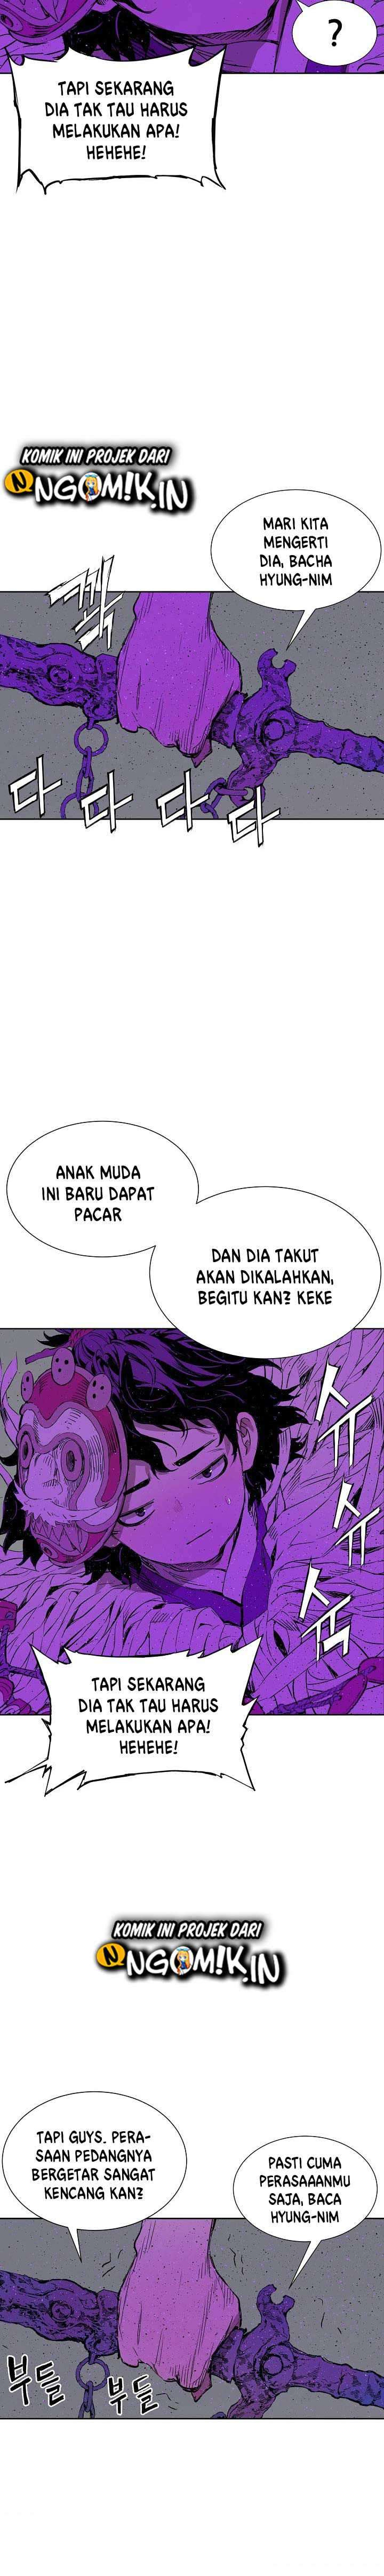 Sword Sheath's Child Chapter 55 Bahasa Indonesia page 37